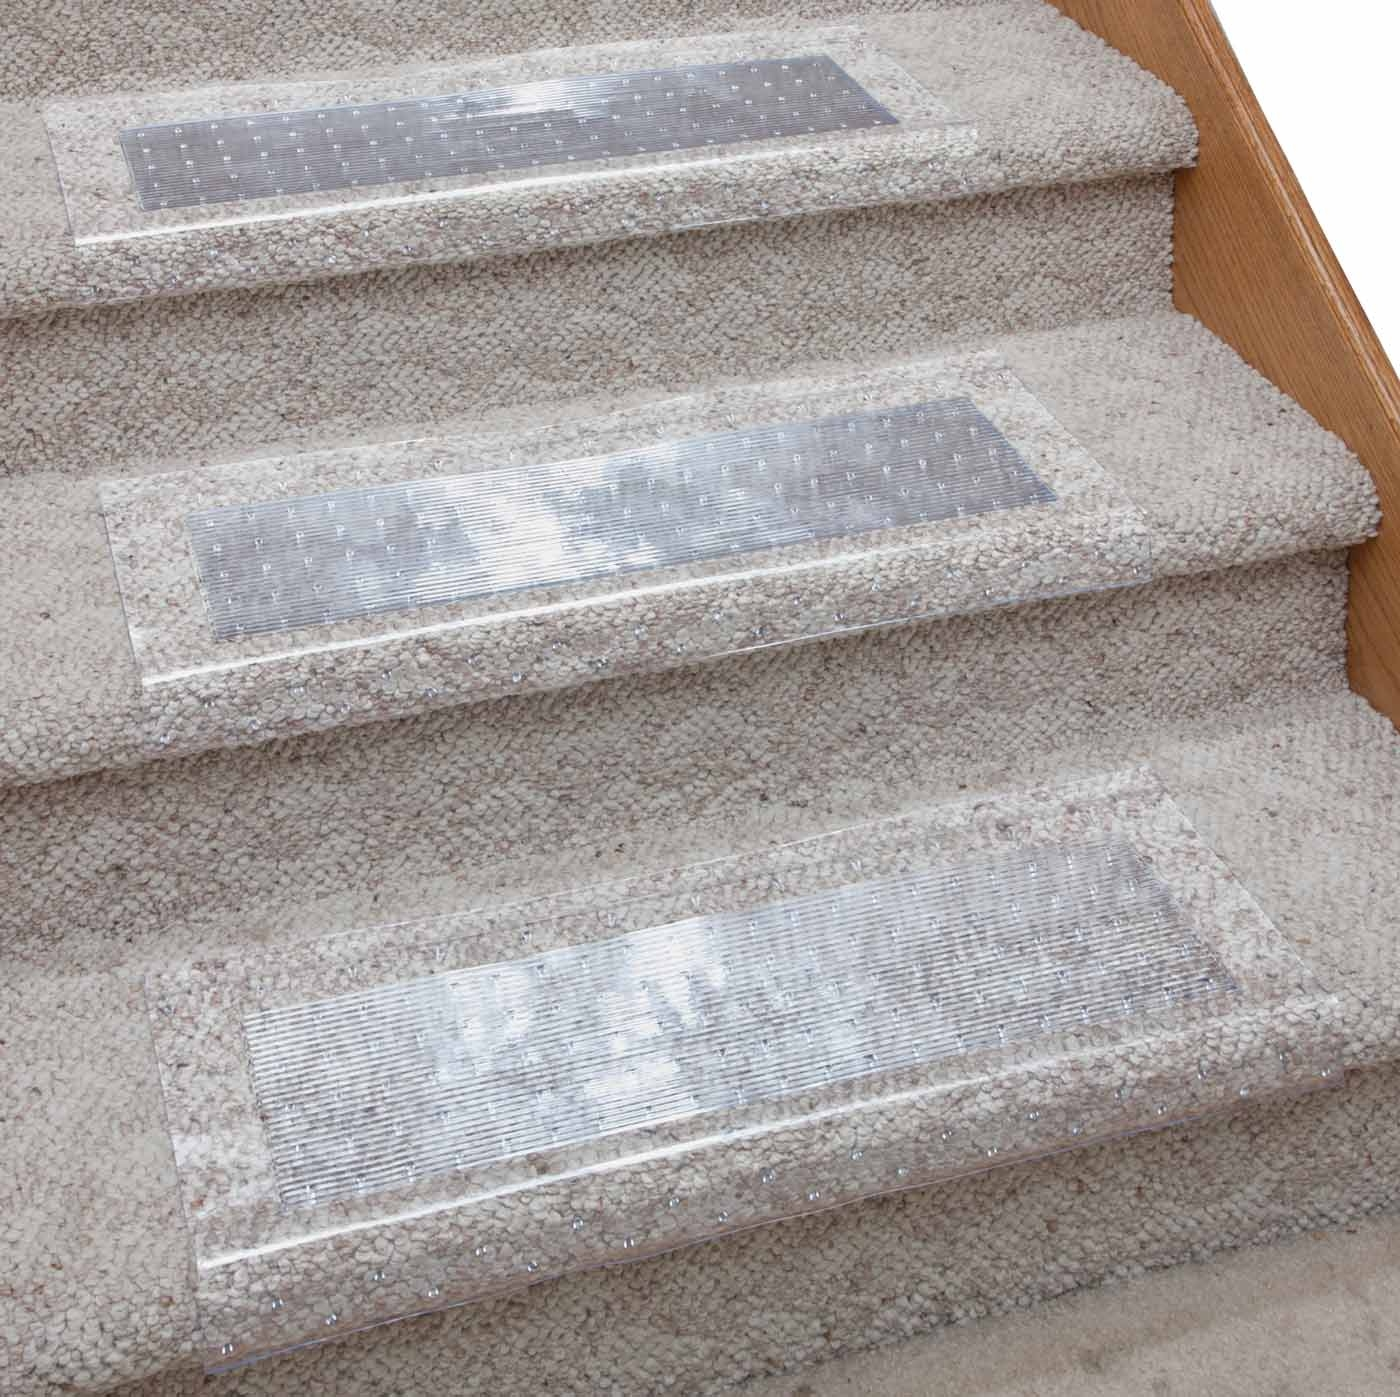 Clear Stair Carpet Protector Easycomforts Protect Stair Within Carpet Protector Mats For Stairs (Image 9 of 15)